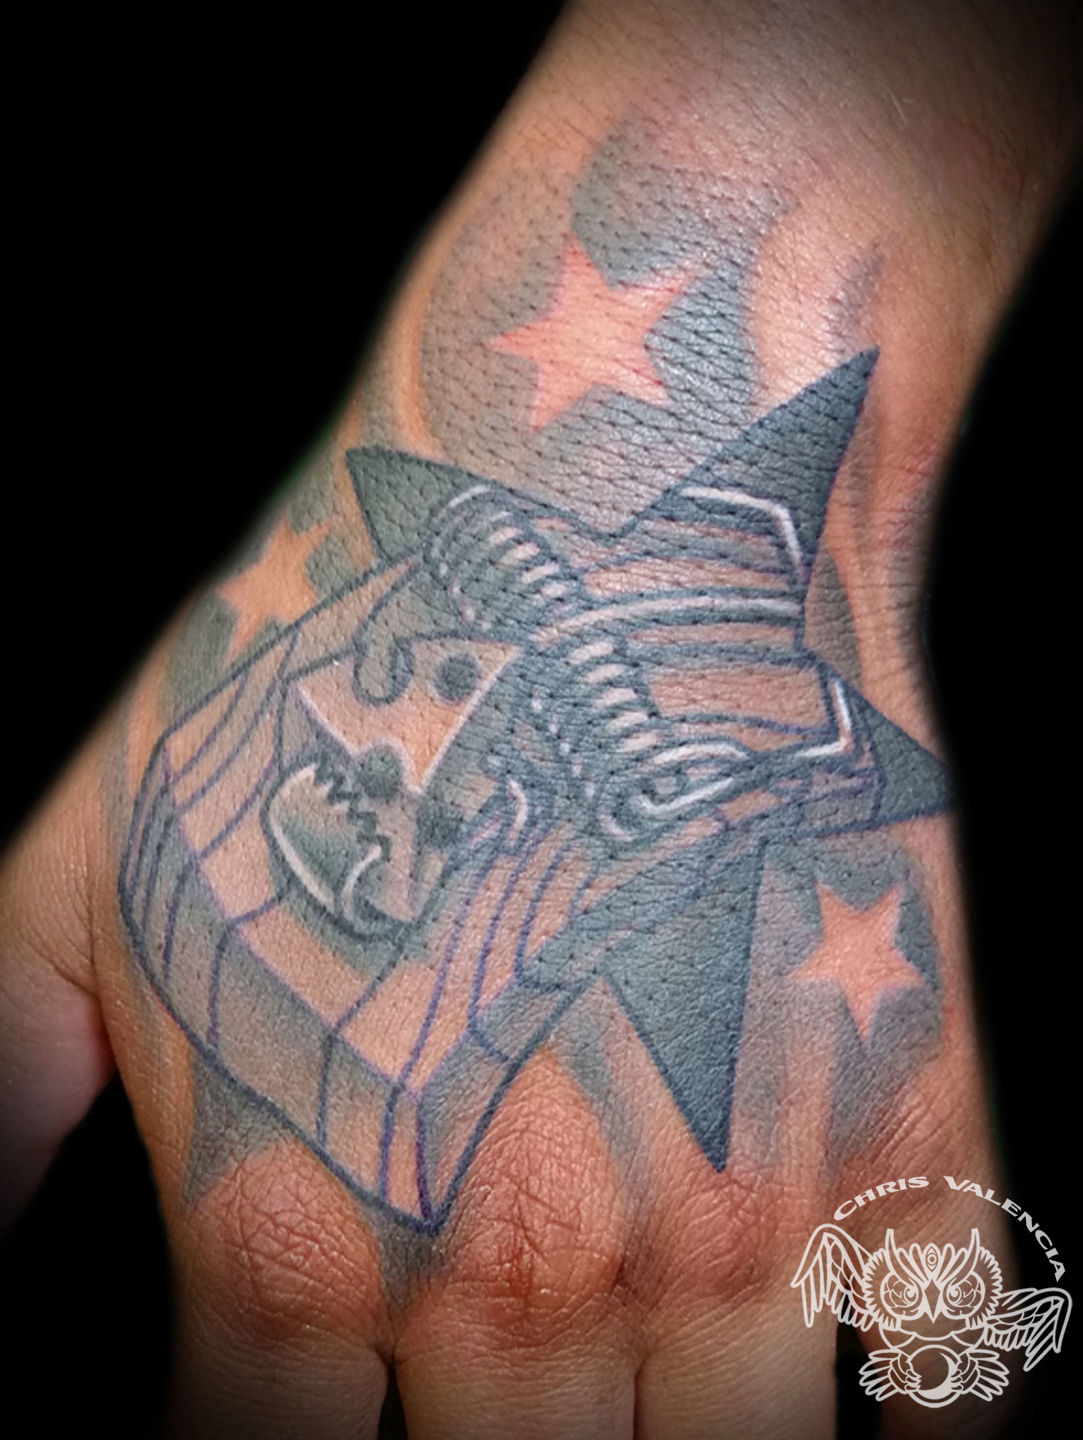 Latest Trapstar Tattoos | Find Trapstar Tattoos